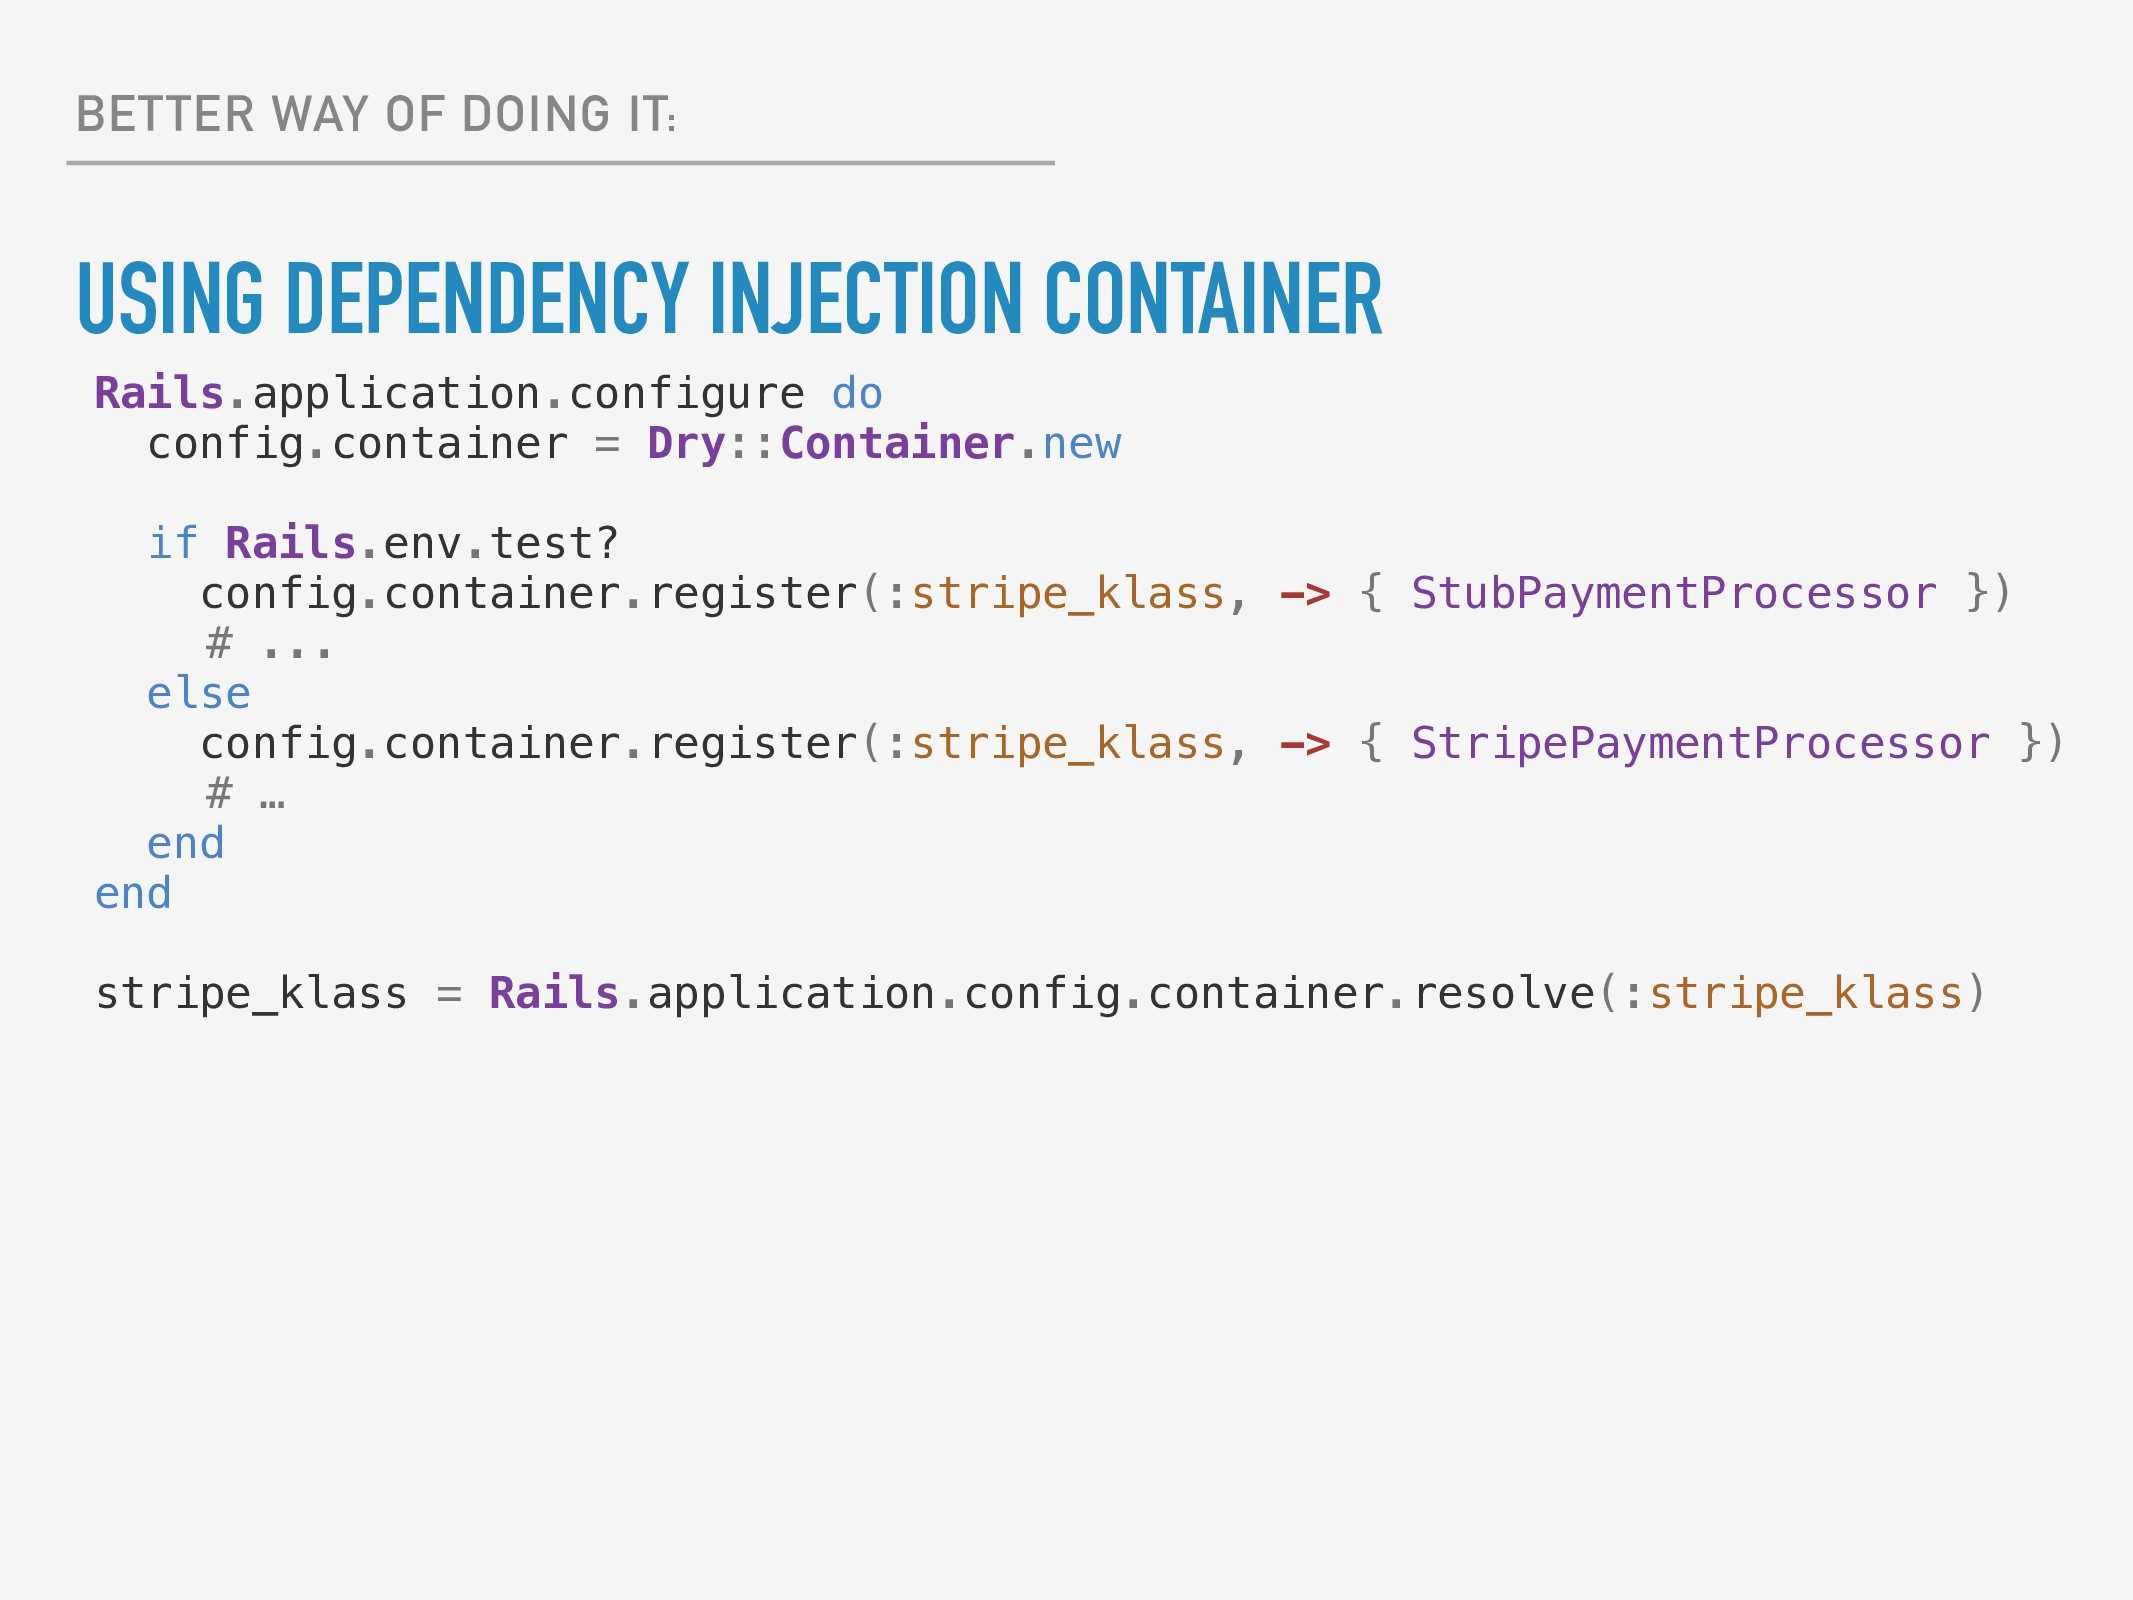 BETTER WAY OF DOING IT: USING DEPENDENCY INJECT...